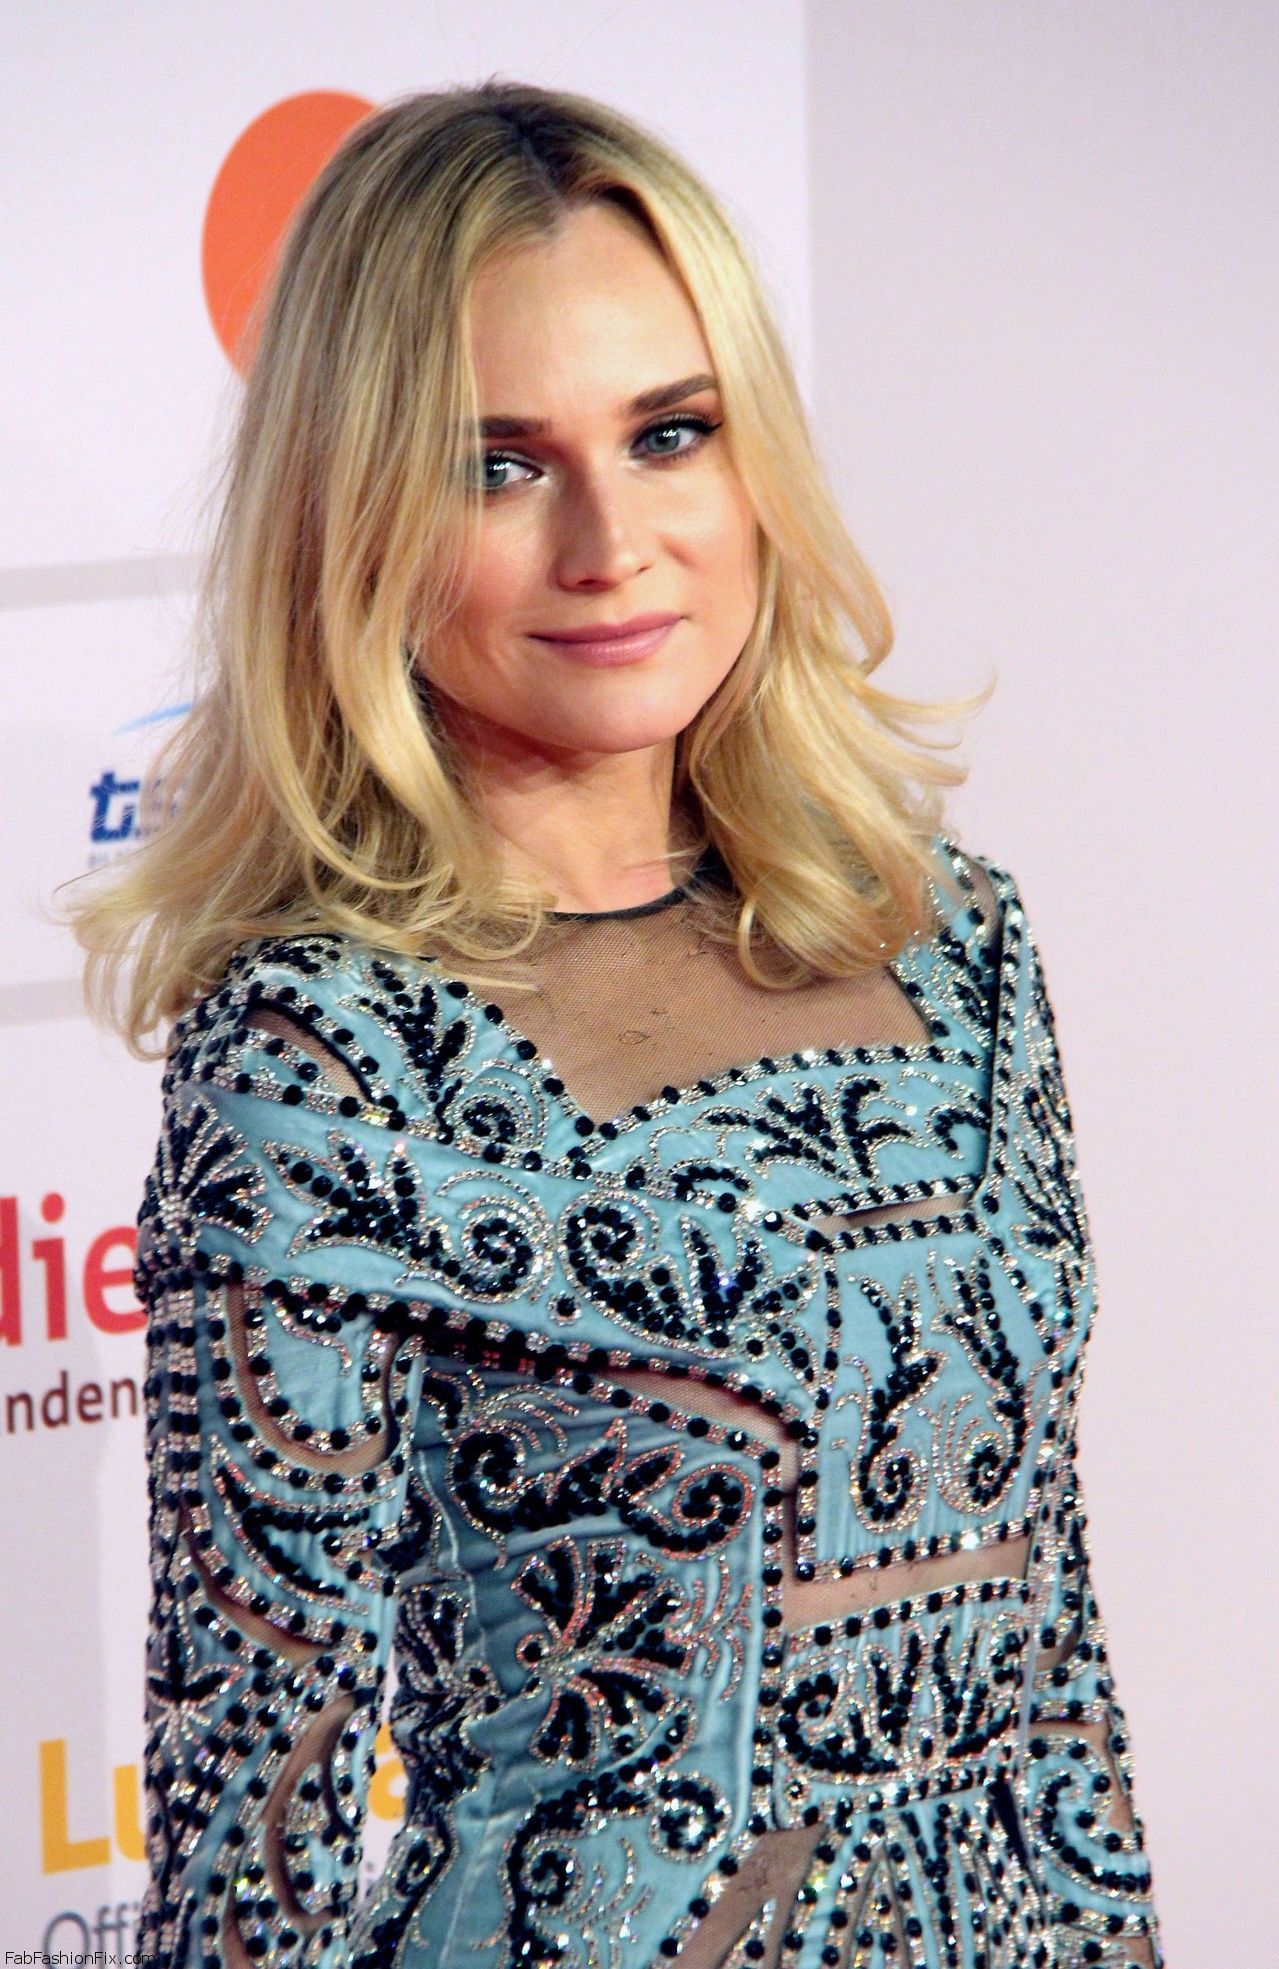 Diane_Kruger_European_Film_Awards120713_tcc_2